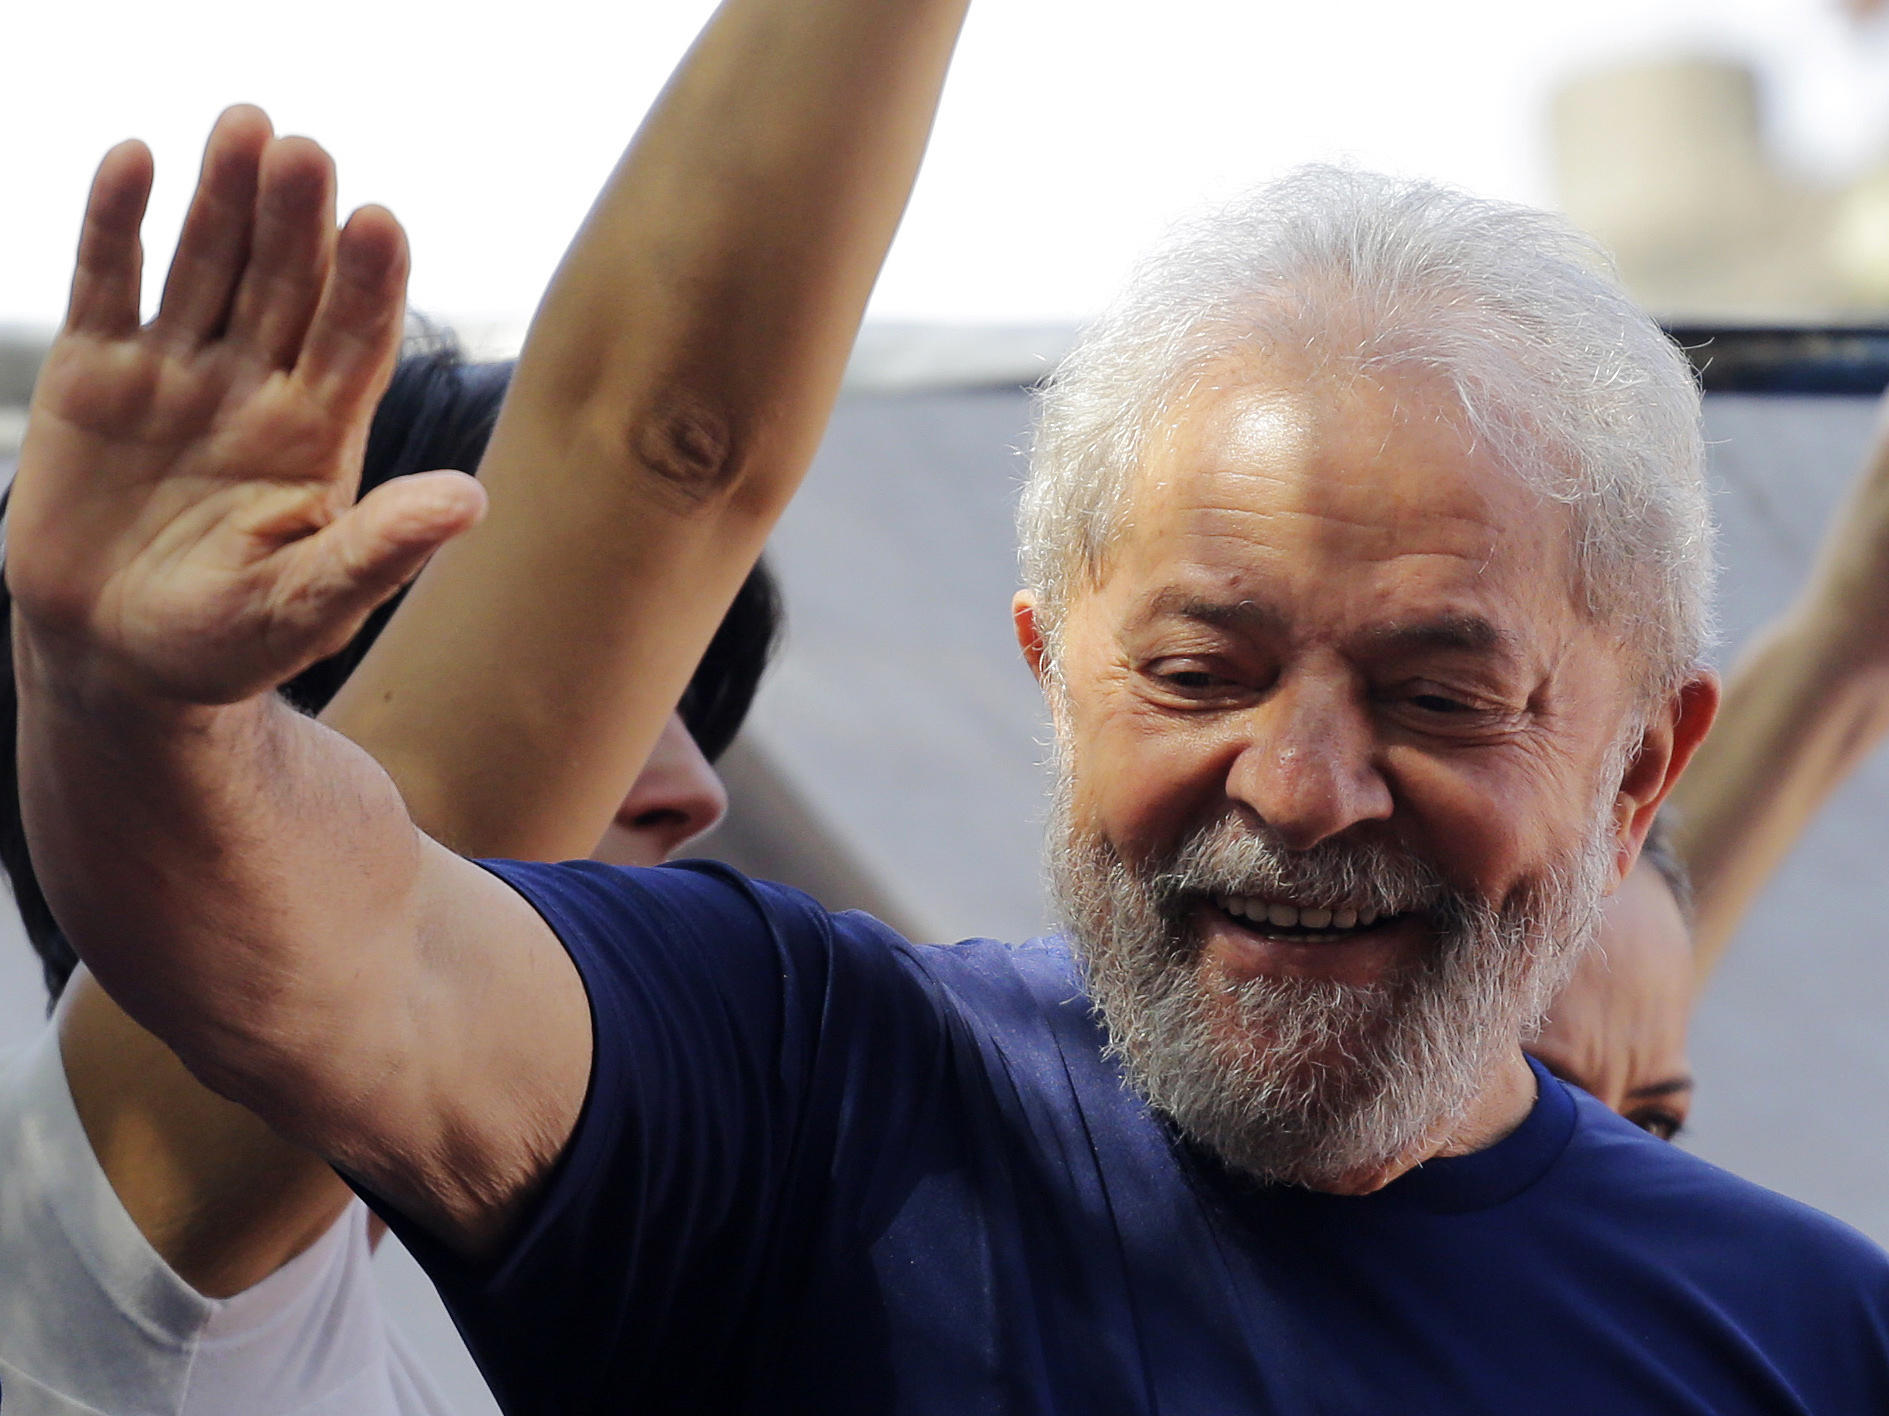 Brazil's ex-president Lula defies prison order, creating standoff